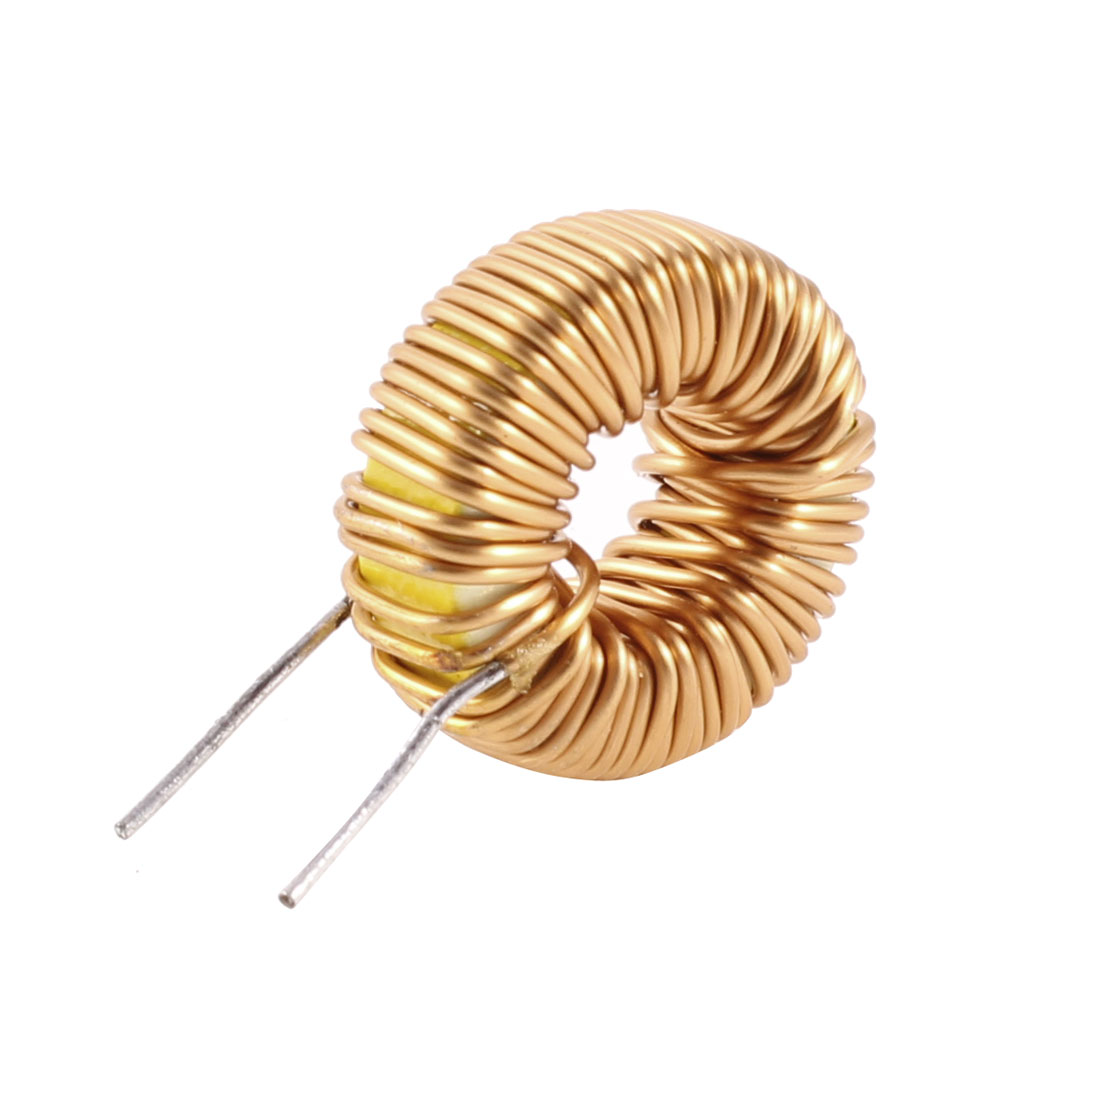 Toroid Core Inductor Wire Wind Wound 150uH 42mOhm 5A Coil